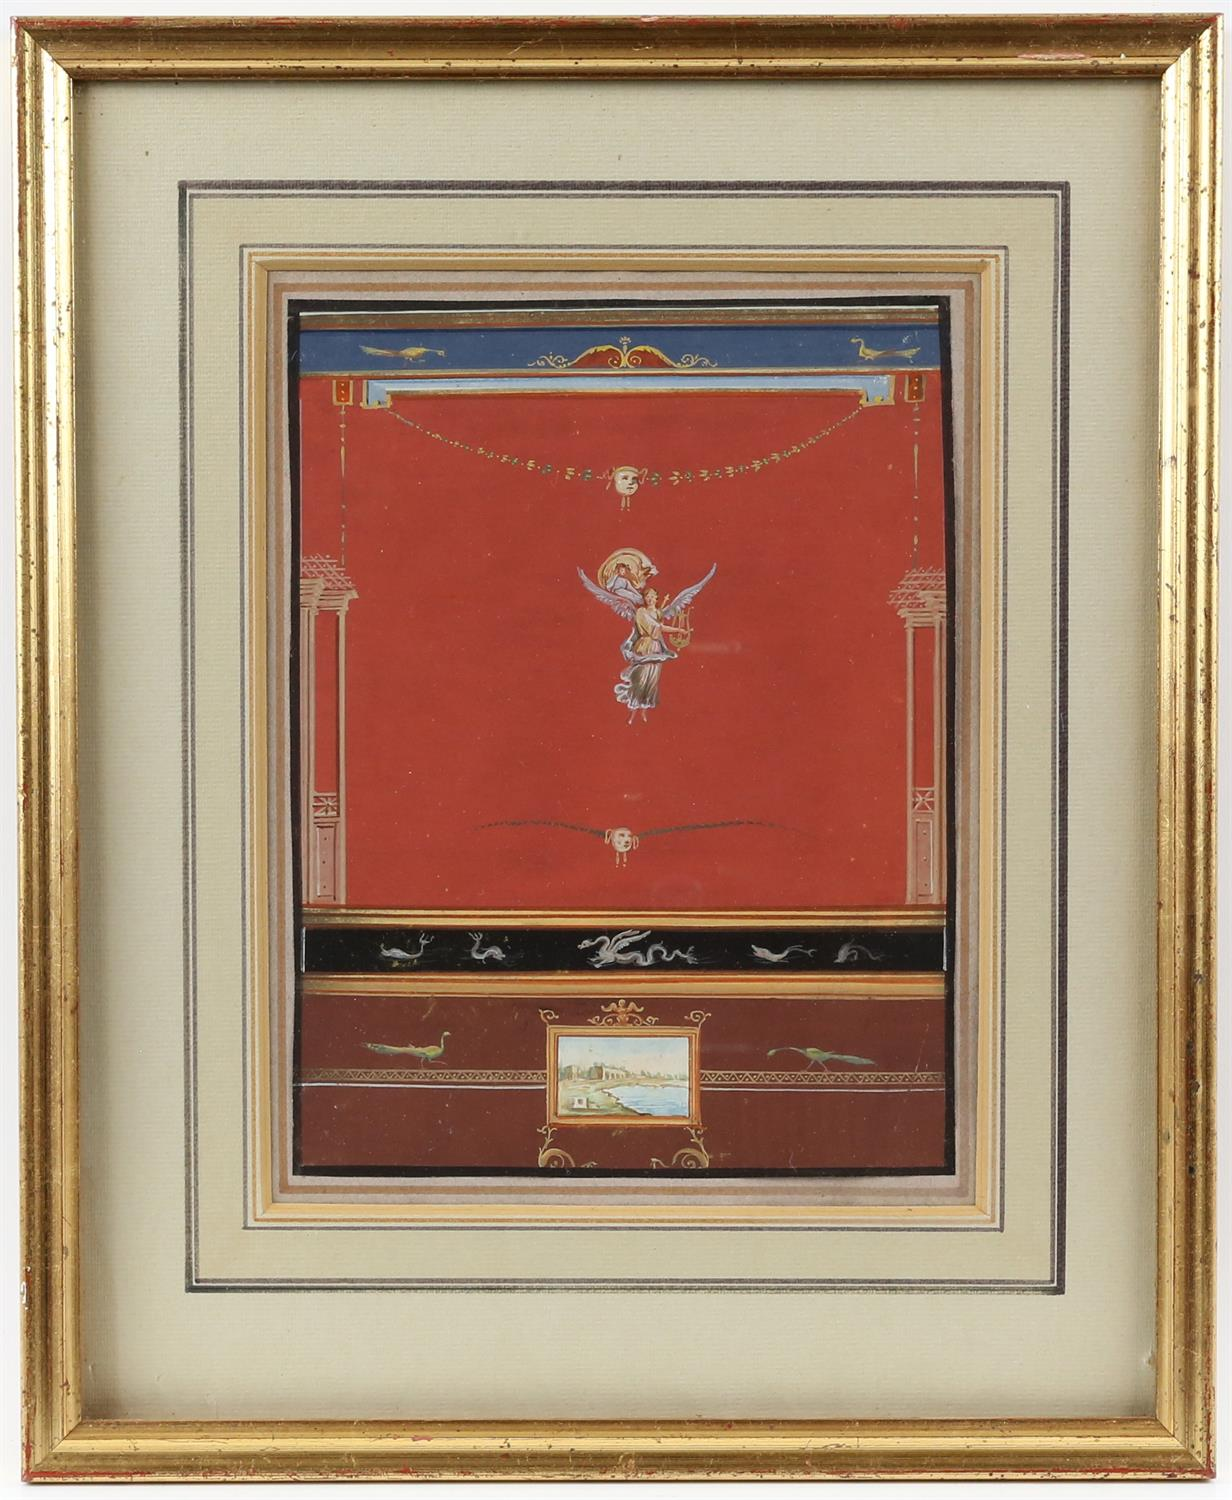 19th century Italian School, Pompeiian wall decoration for an interior, 22cm x 16.5cm, and another, - Image 4 of 7